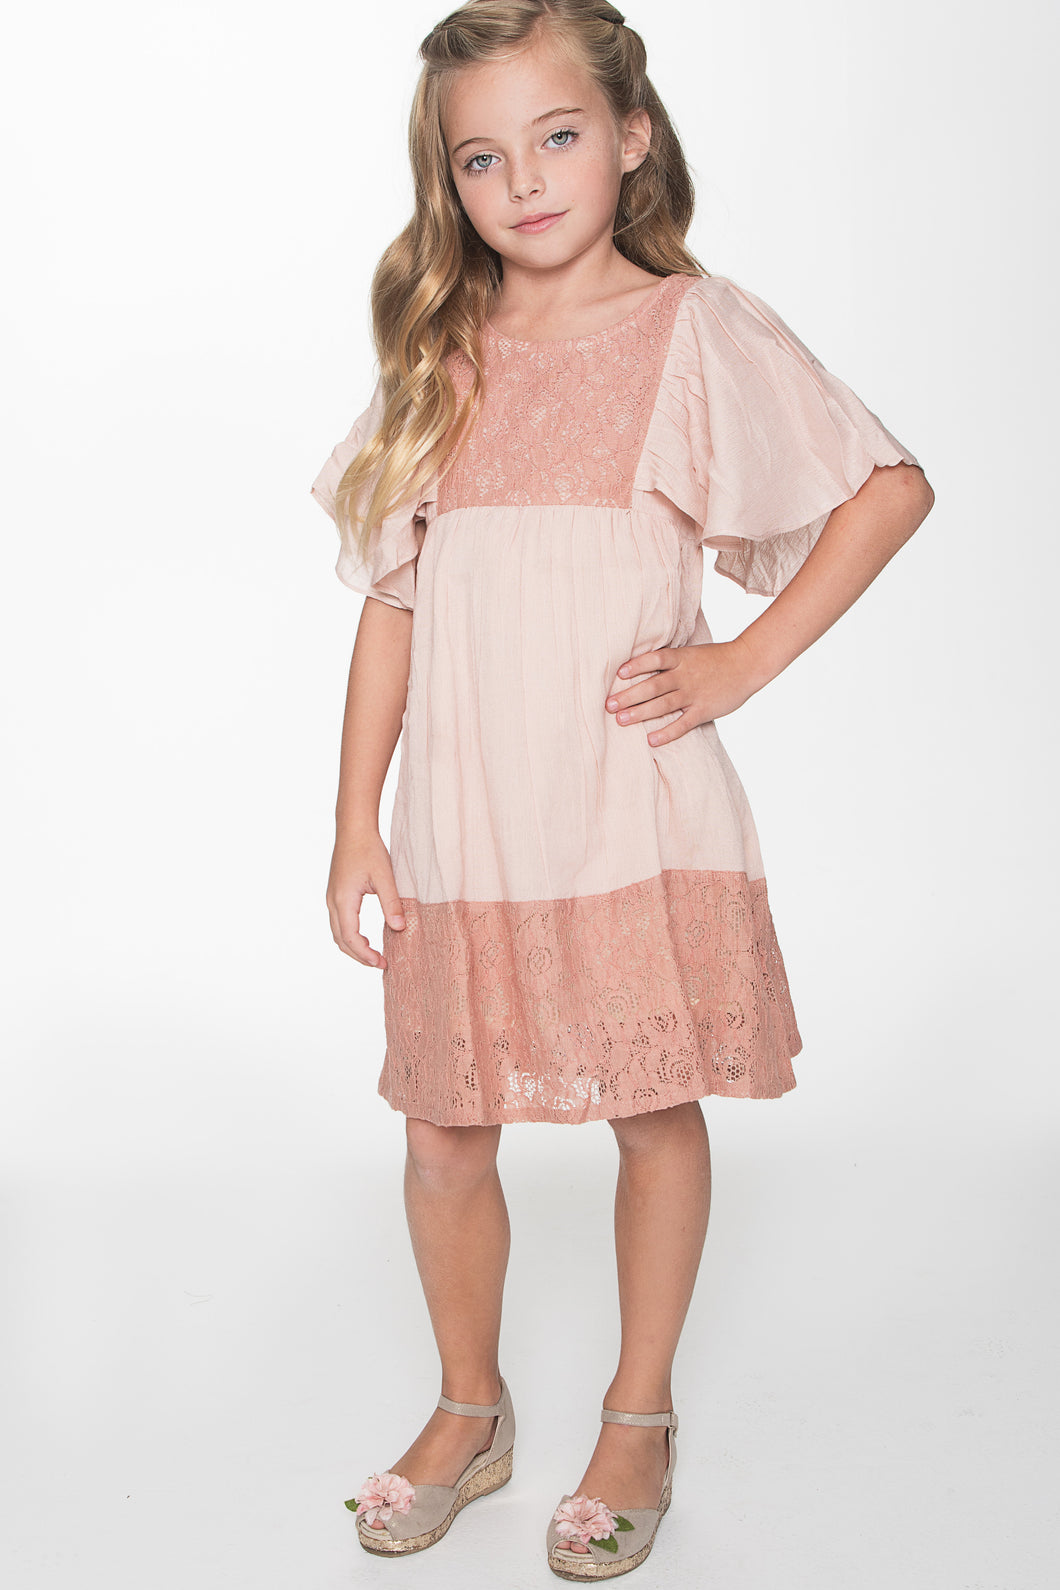 Blush Flounce Sleeve and Lace Dress - Kids Wholesale Boutique Clothing, Dress - Girls Dresses, Yo Baby Wholesale - Yo Baby